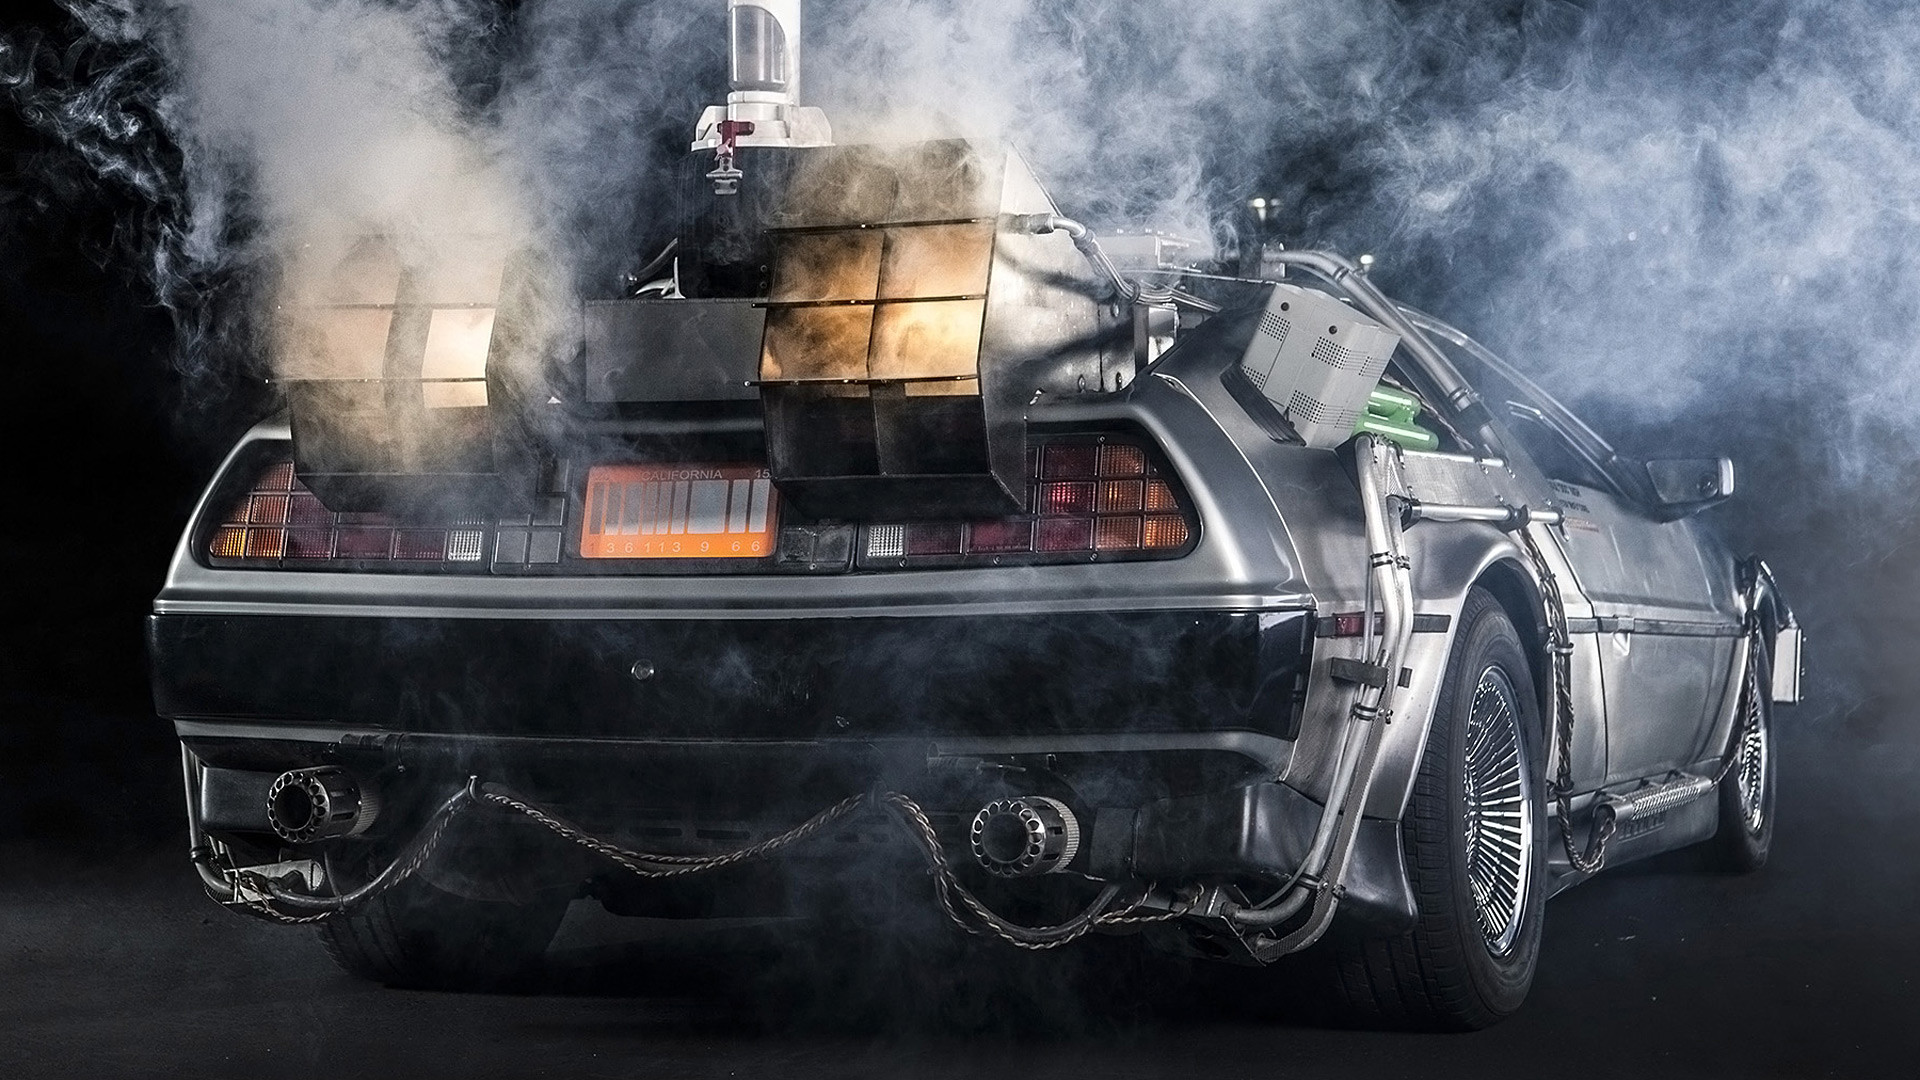 1920x1080 1985 DeLorean DMC-12 'Back to the Future' picture